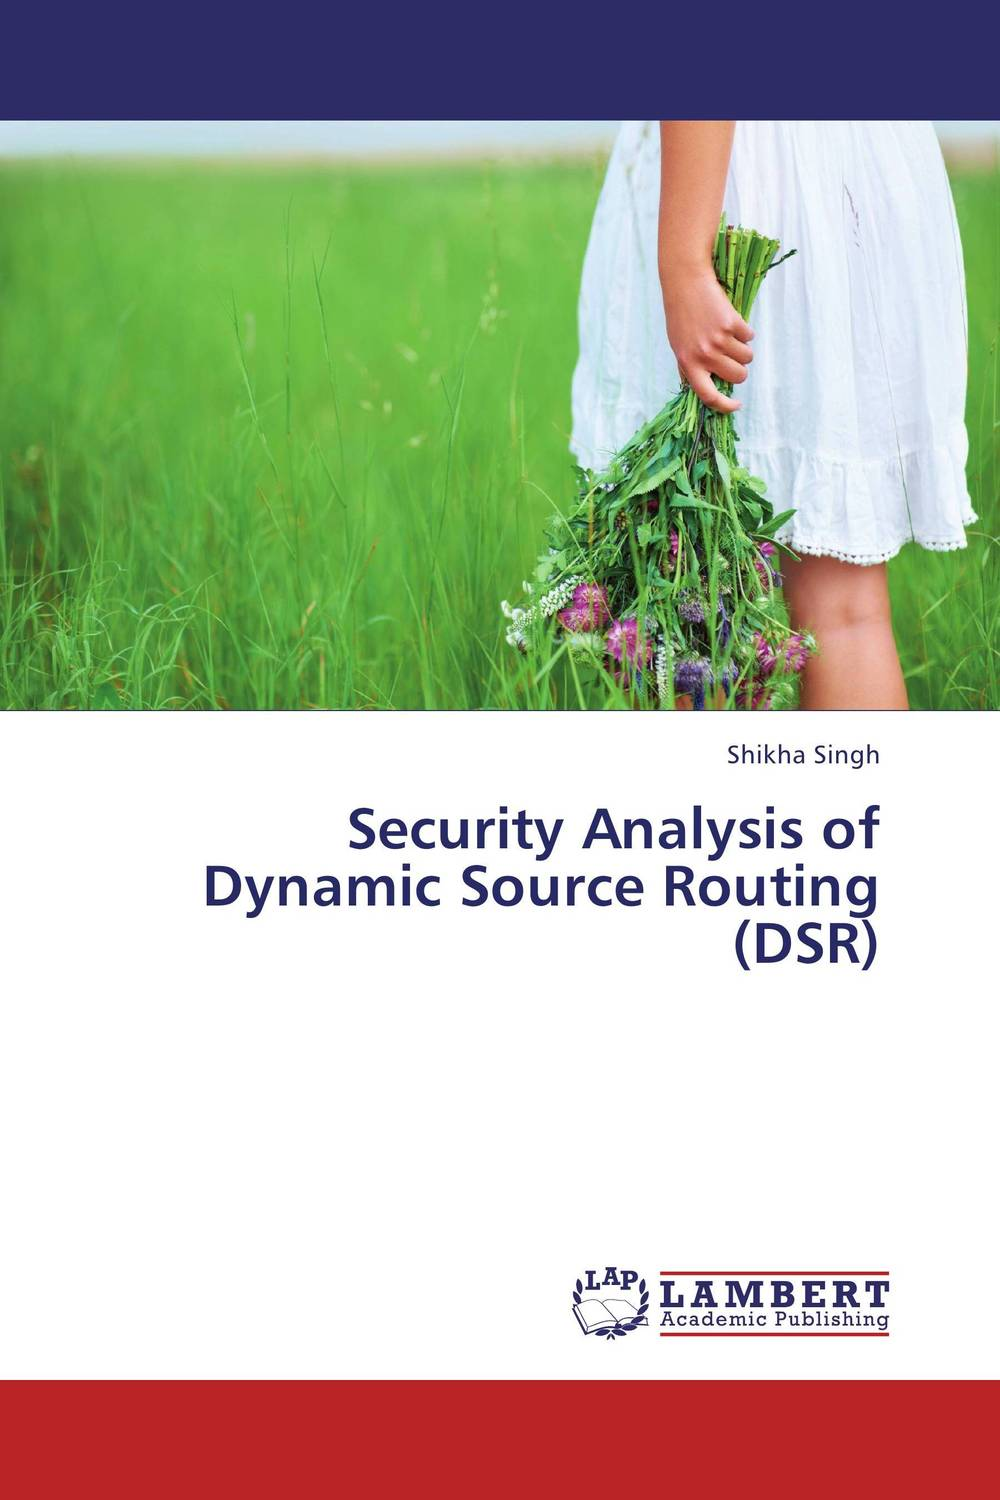 Security Analysis of Dynamic Source Routing (DSR) dynamic source routing protocol and its importance